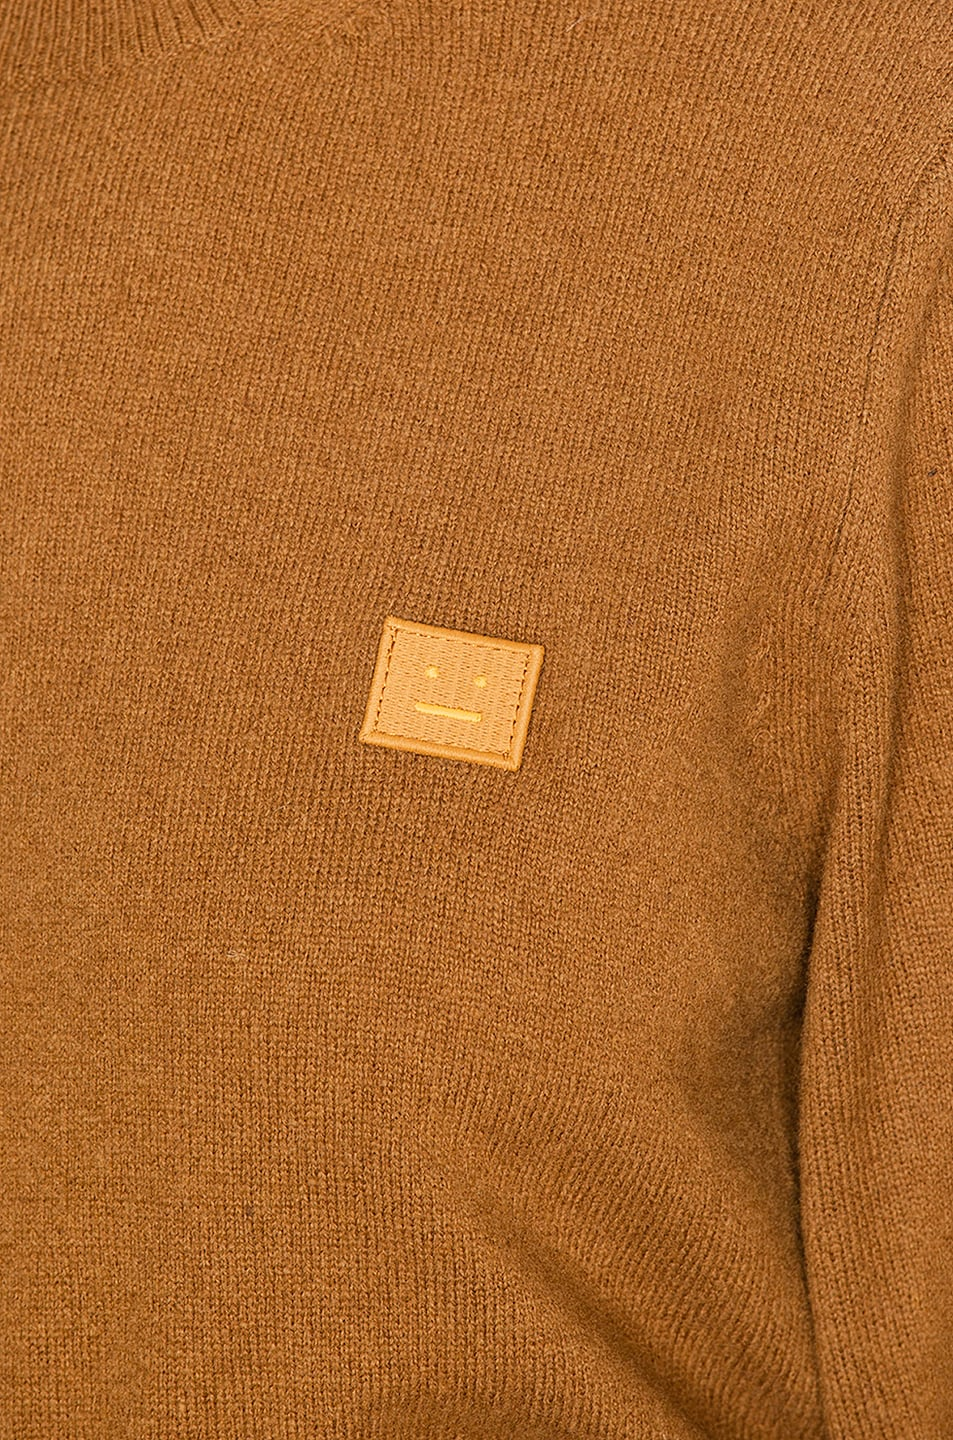 Image 5 of Acne Studios Kalon Face Sweater in Caramel Brown